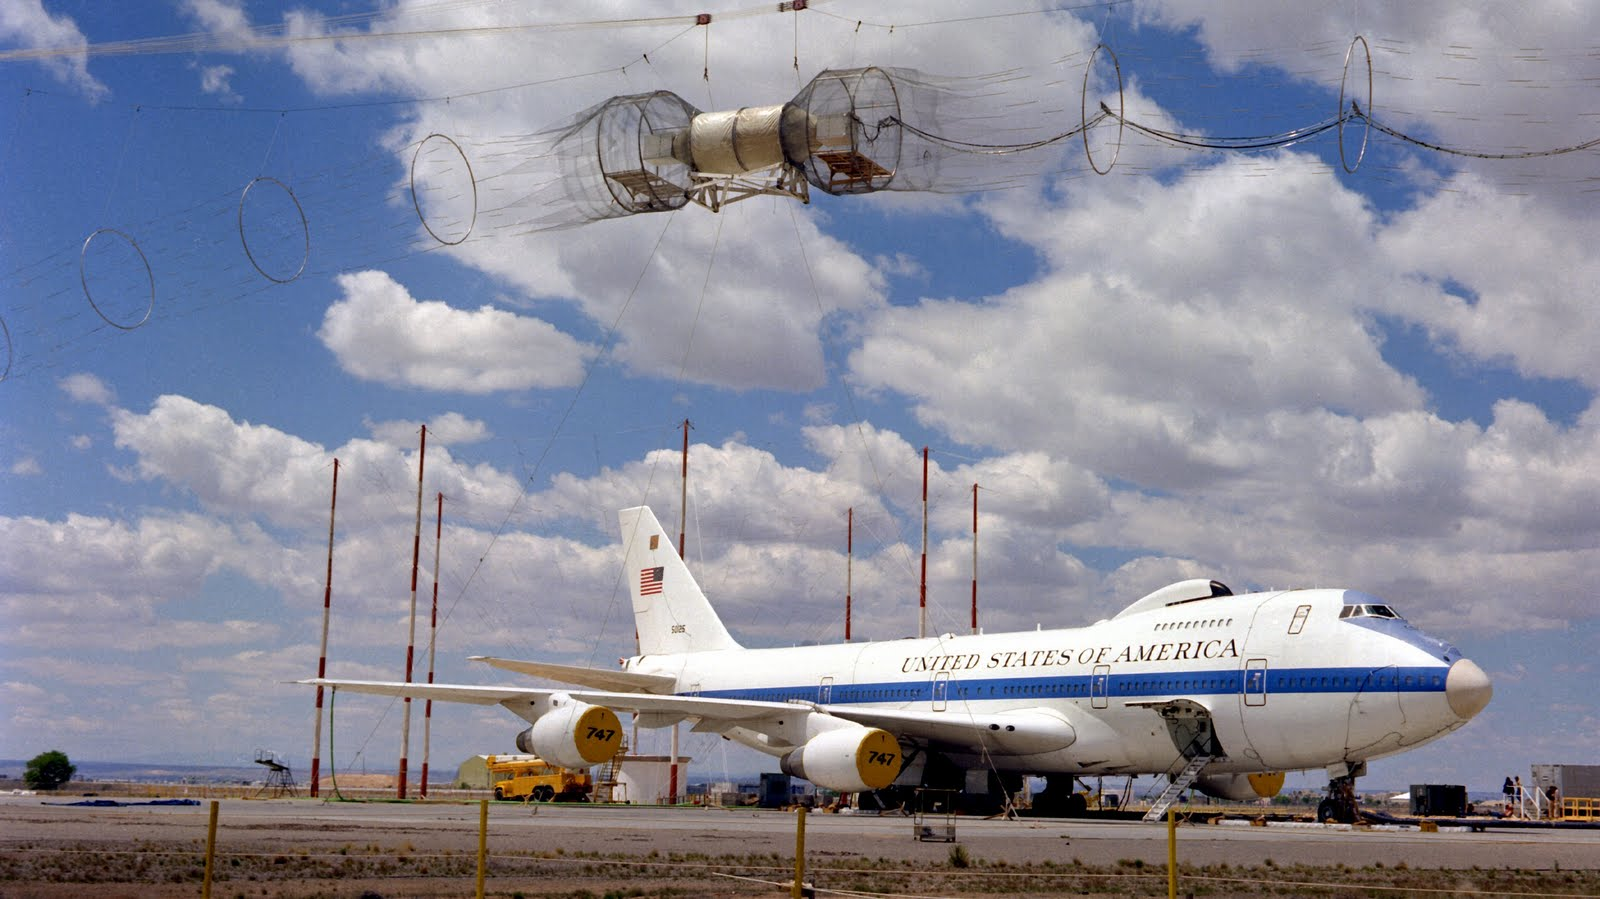 s1600air force one E 4 grounded retired aircraft wallpaperjpg 1600x899